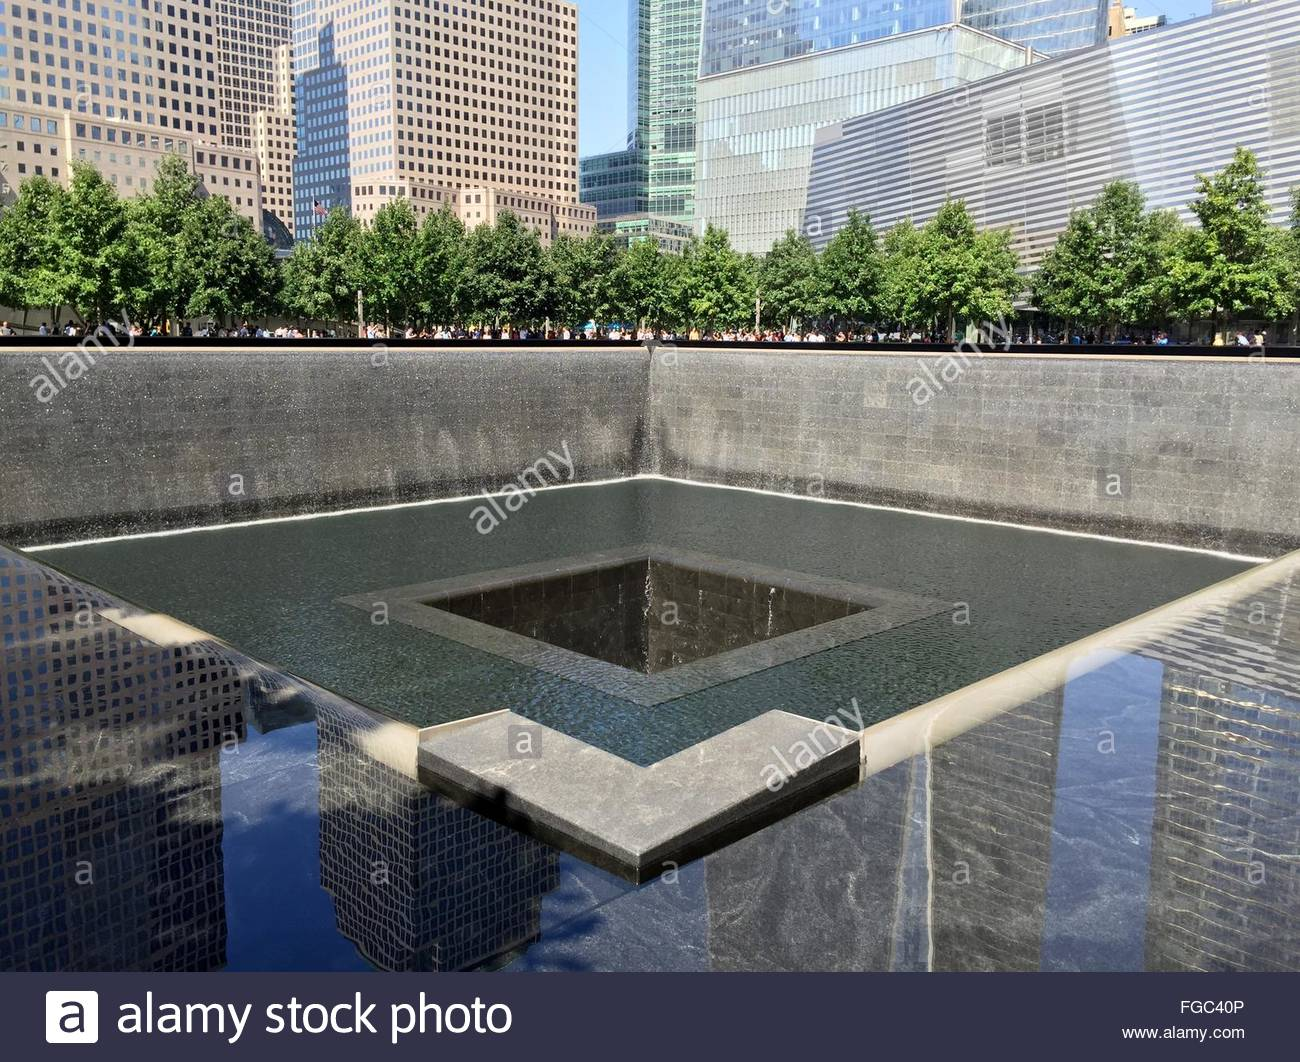 High Angle View Of National September 11 Memorial & Museum - Stock Image